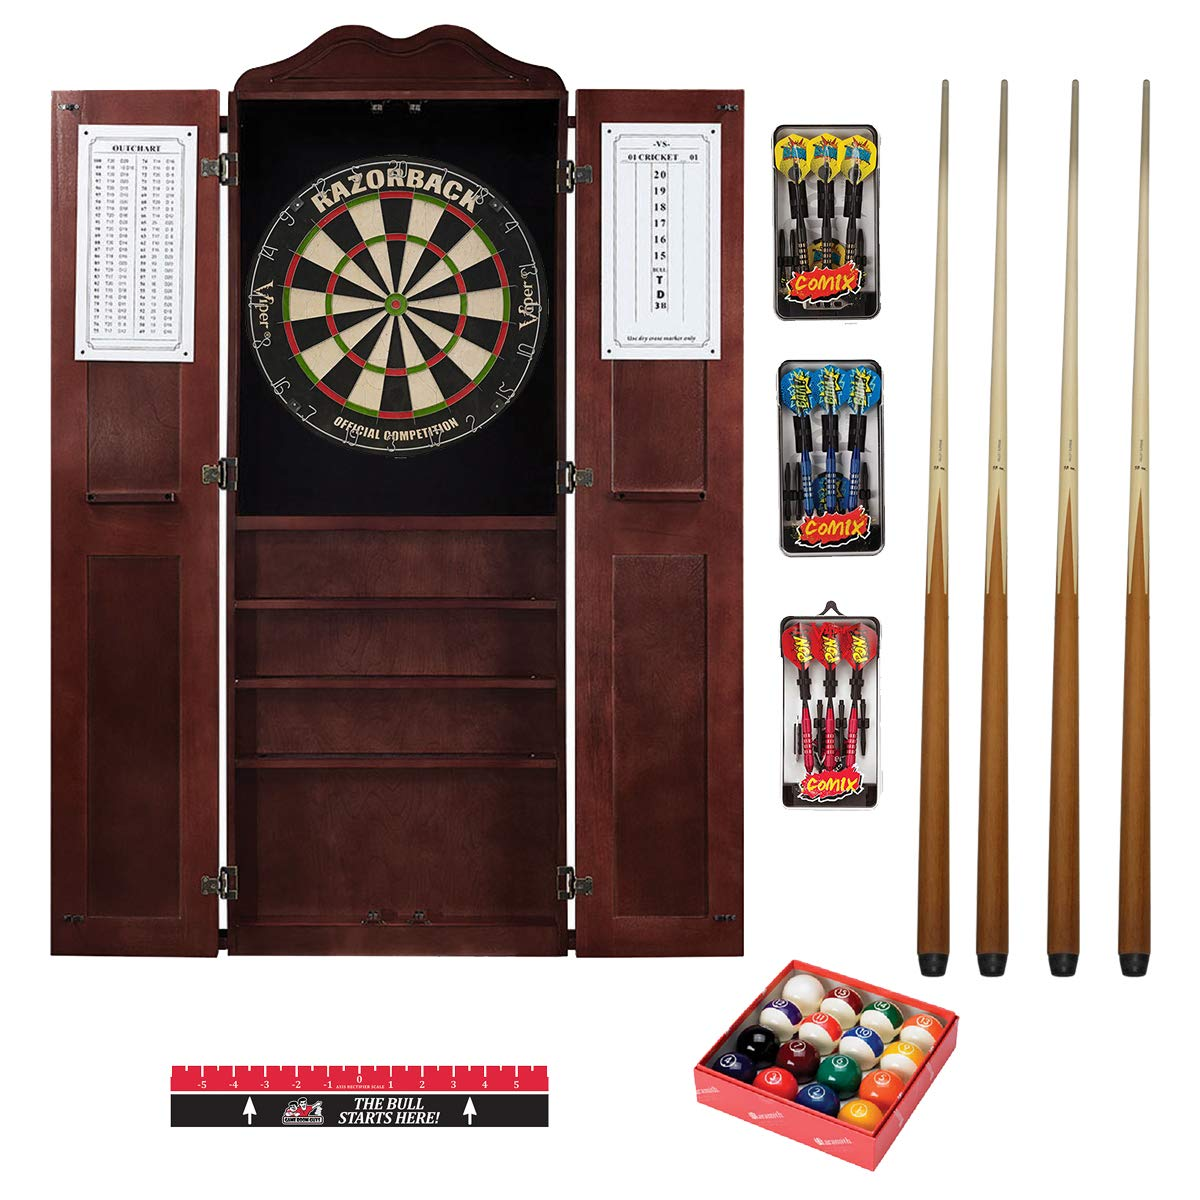 Game Room Guys Steel Tip Dart Board & Billiard Cue Cabinet Pkg-English Tudor